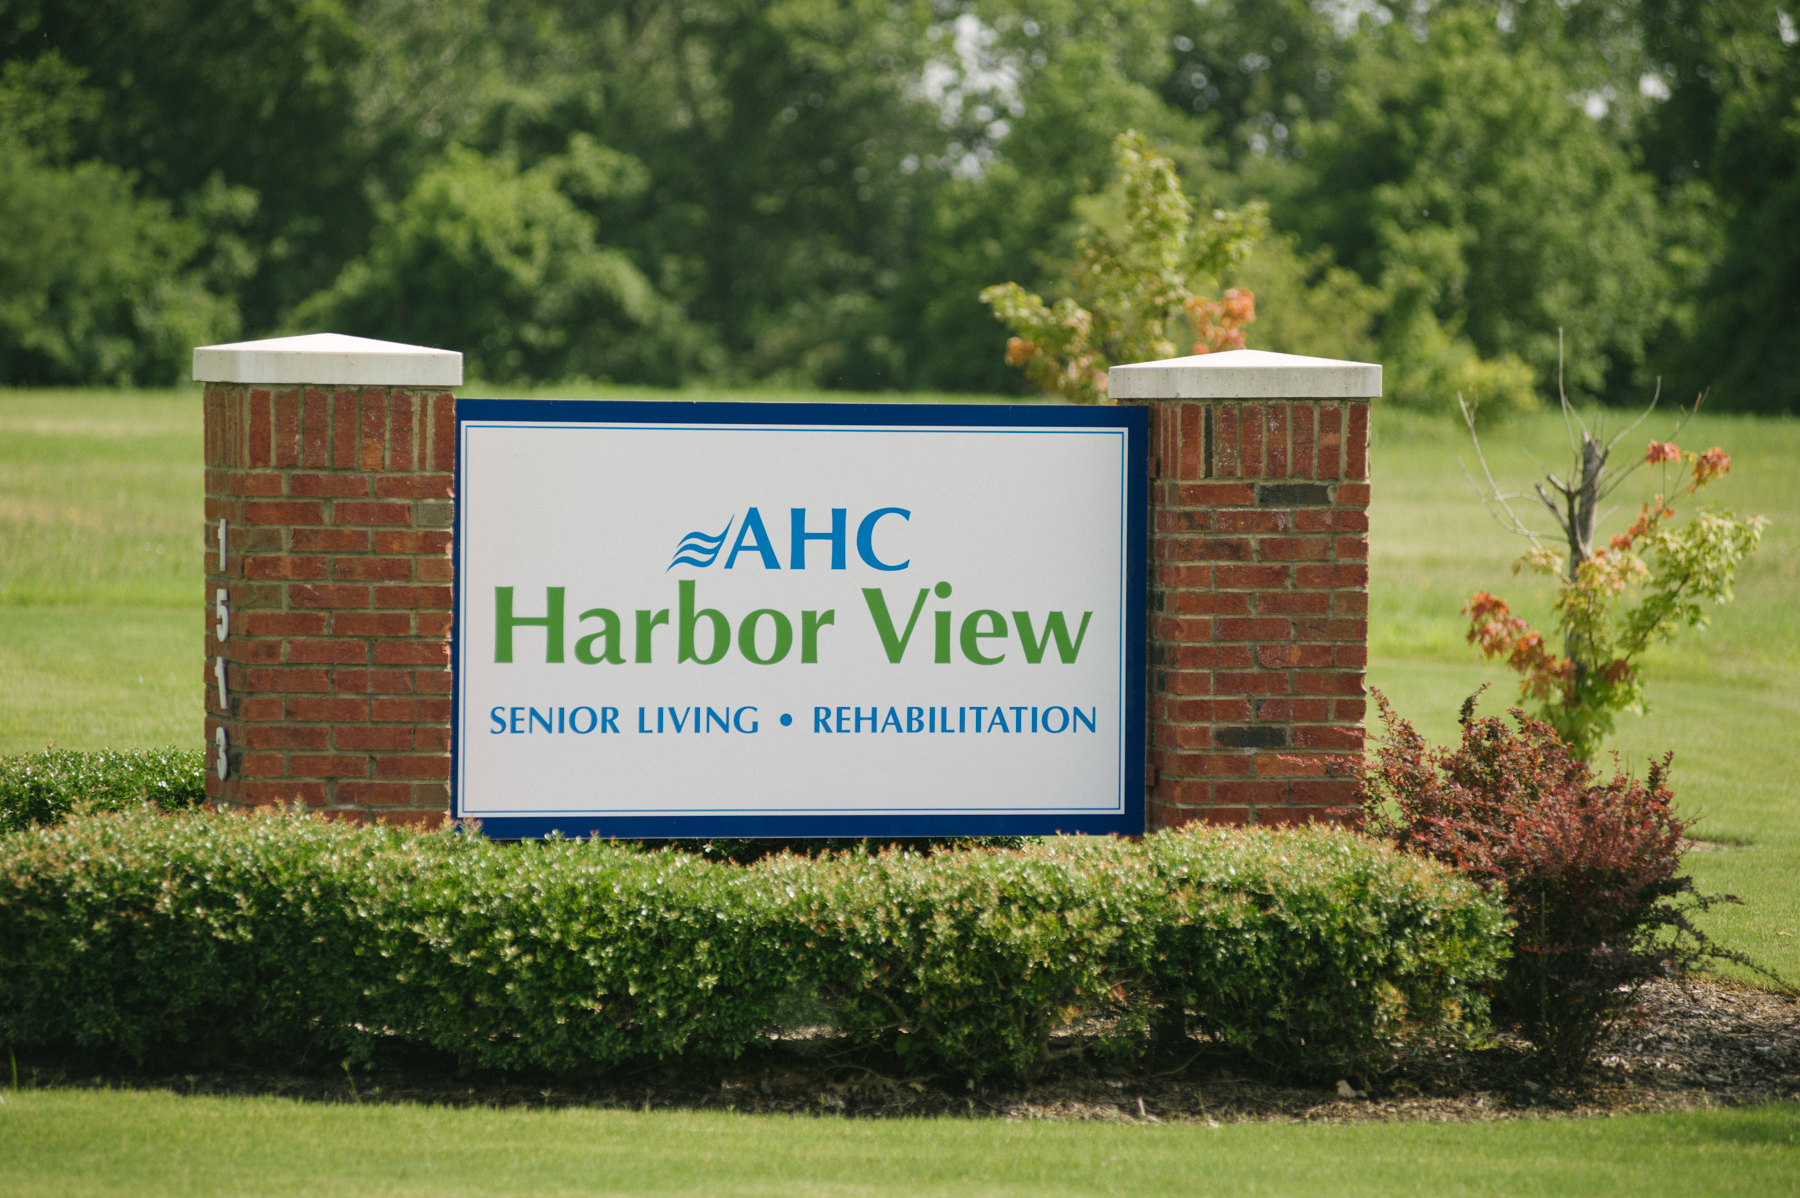 AHC-harbor-view-sign-3